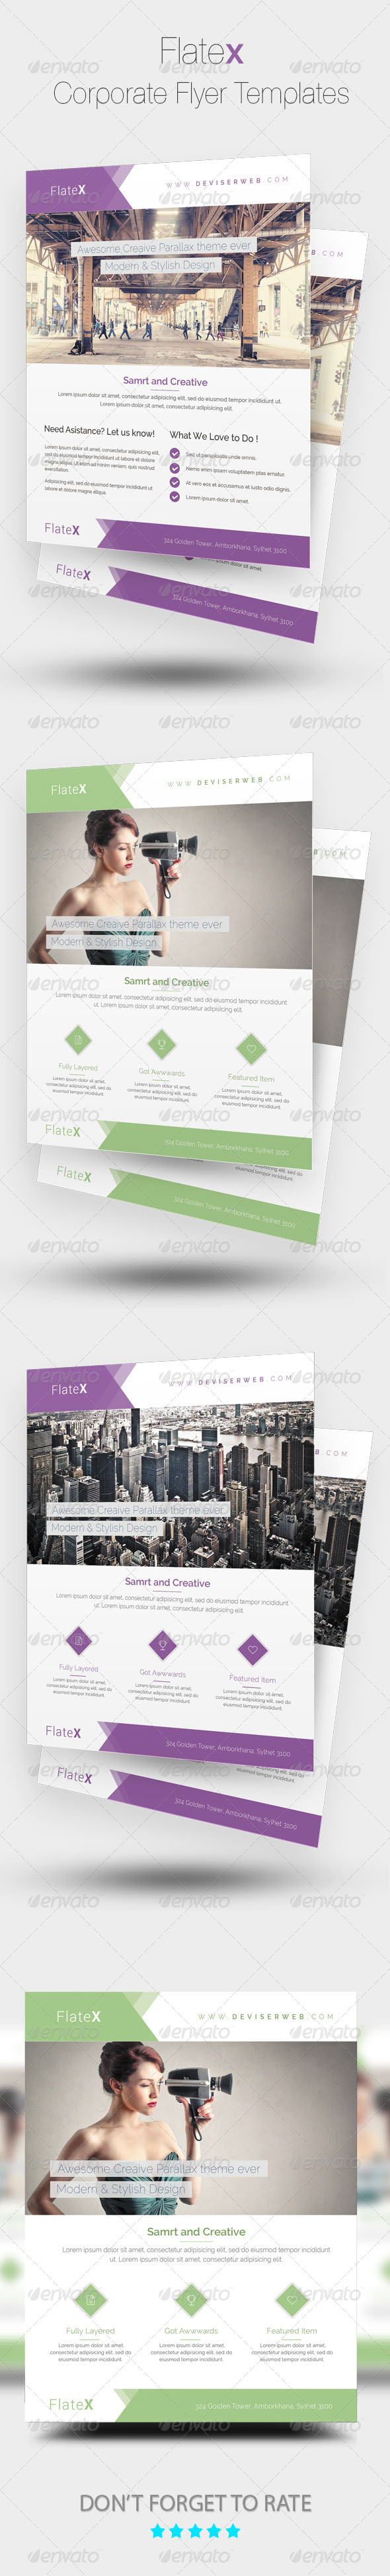 GraphicRiver Flatex Modern Corporate Flyer Templates 8241907